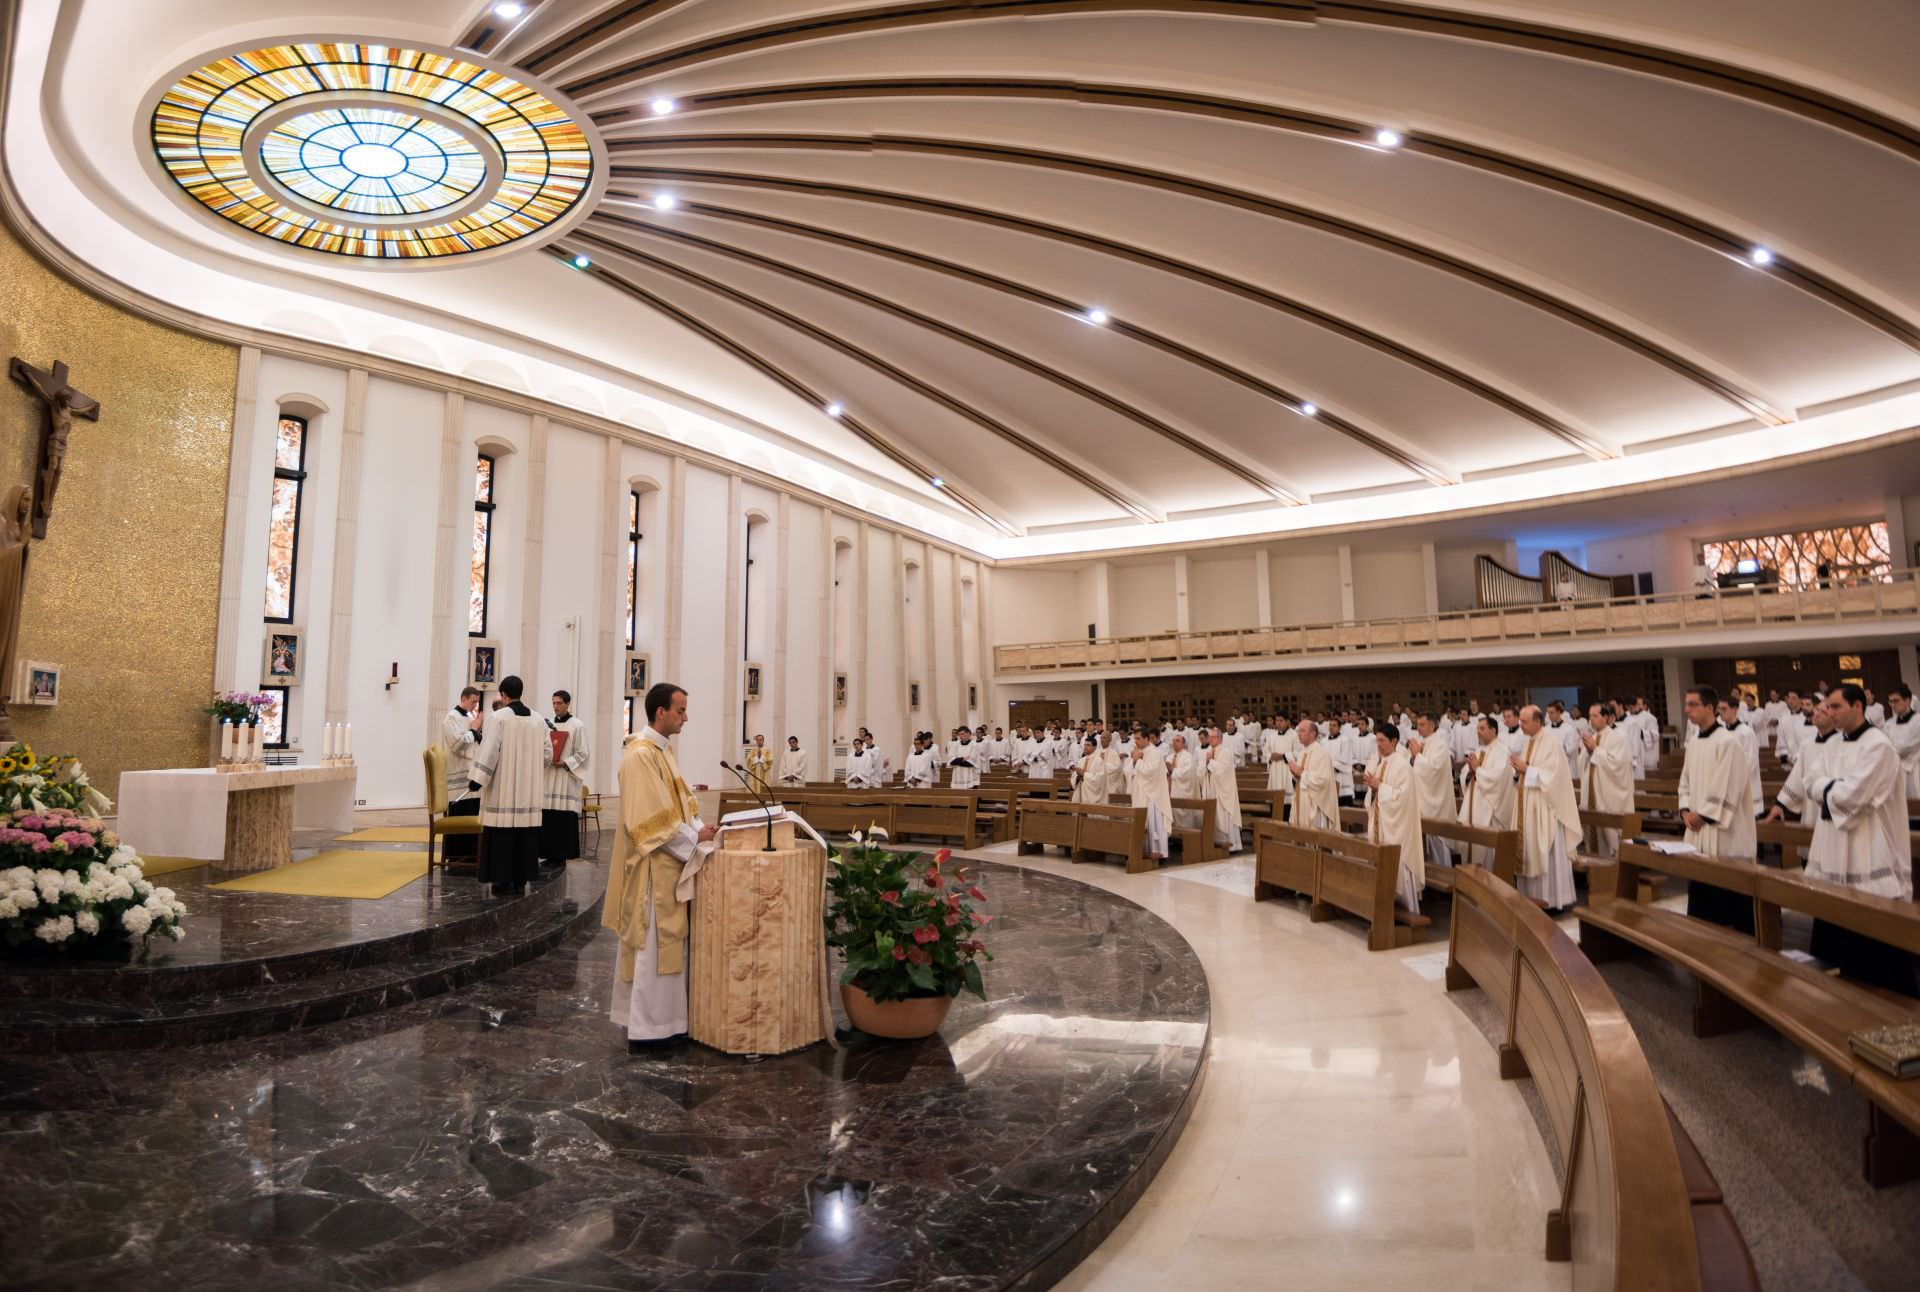 church, sentence, rome, priests, mass, chapel, pray, religious, mass, rome, miracle, priest, vocations, generosity, chapel, vocations